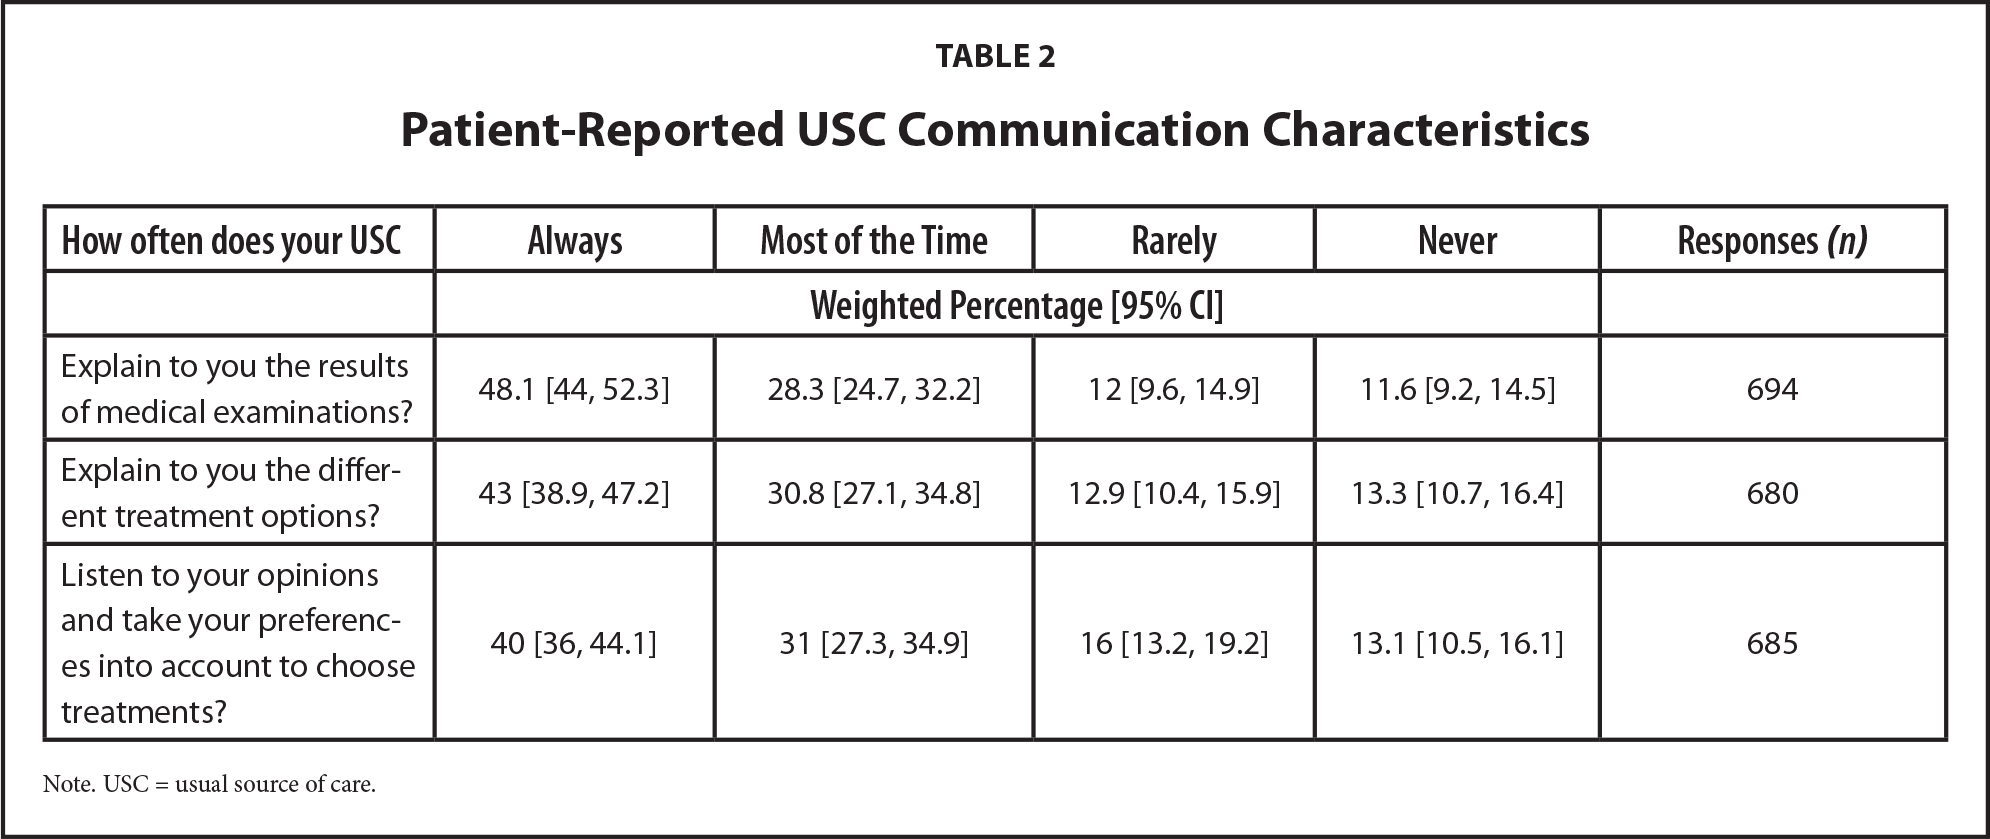 Patient-Reported USC Communication Characteristics